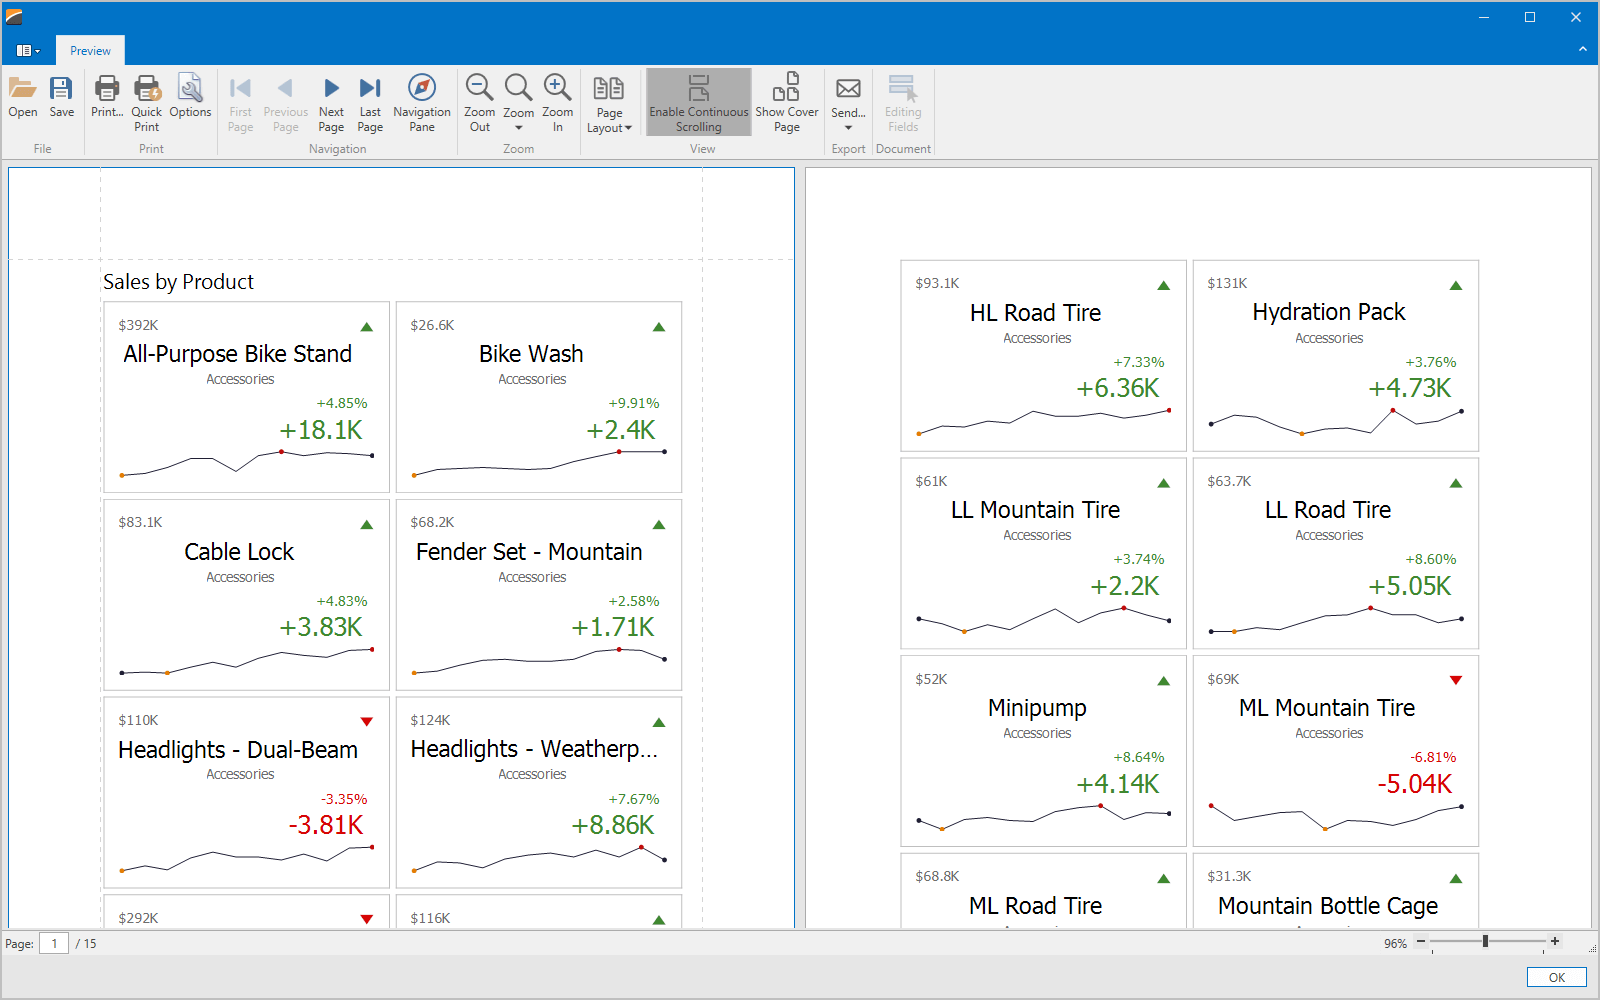 WPF Dashboard Viewer - Print Preview, DevExpress